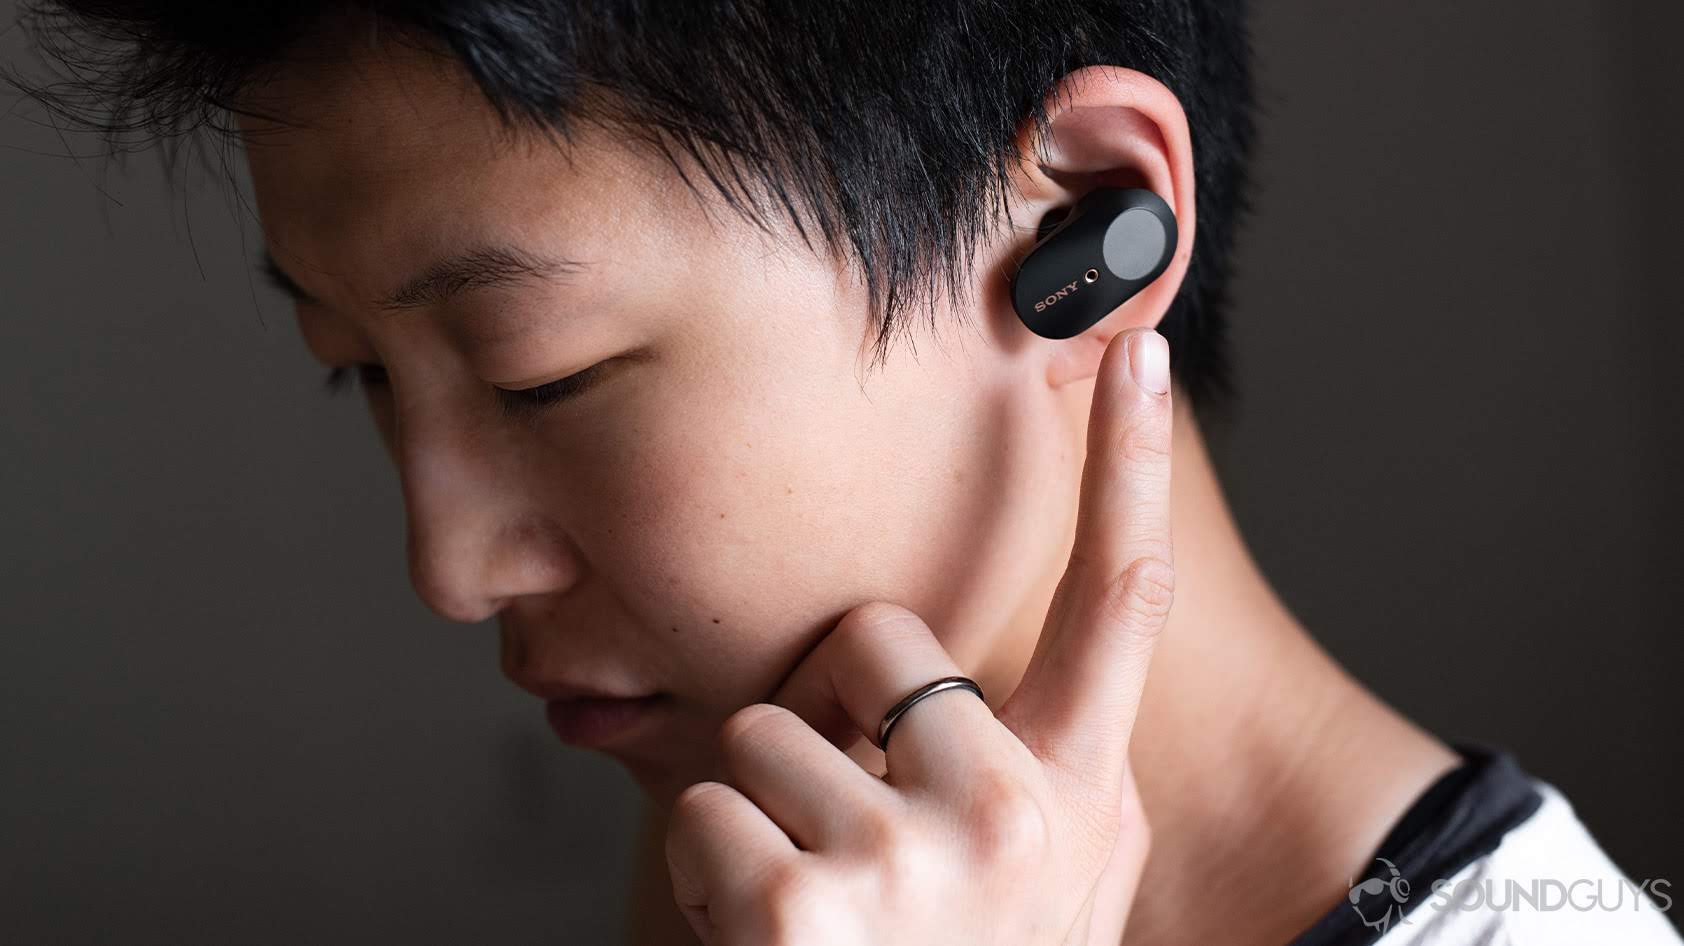 https://www.soundguys.com/wp-content/uploads/2019/07/Sony_WF1000XM3-6_woman-wearing-earbud-touch-control-gestures.jpg